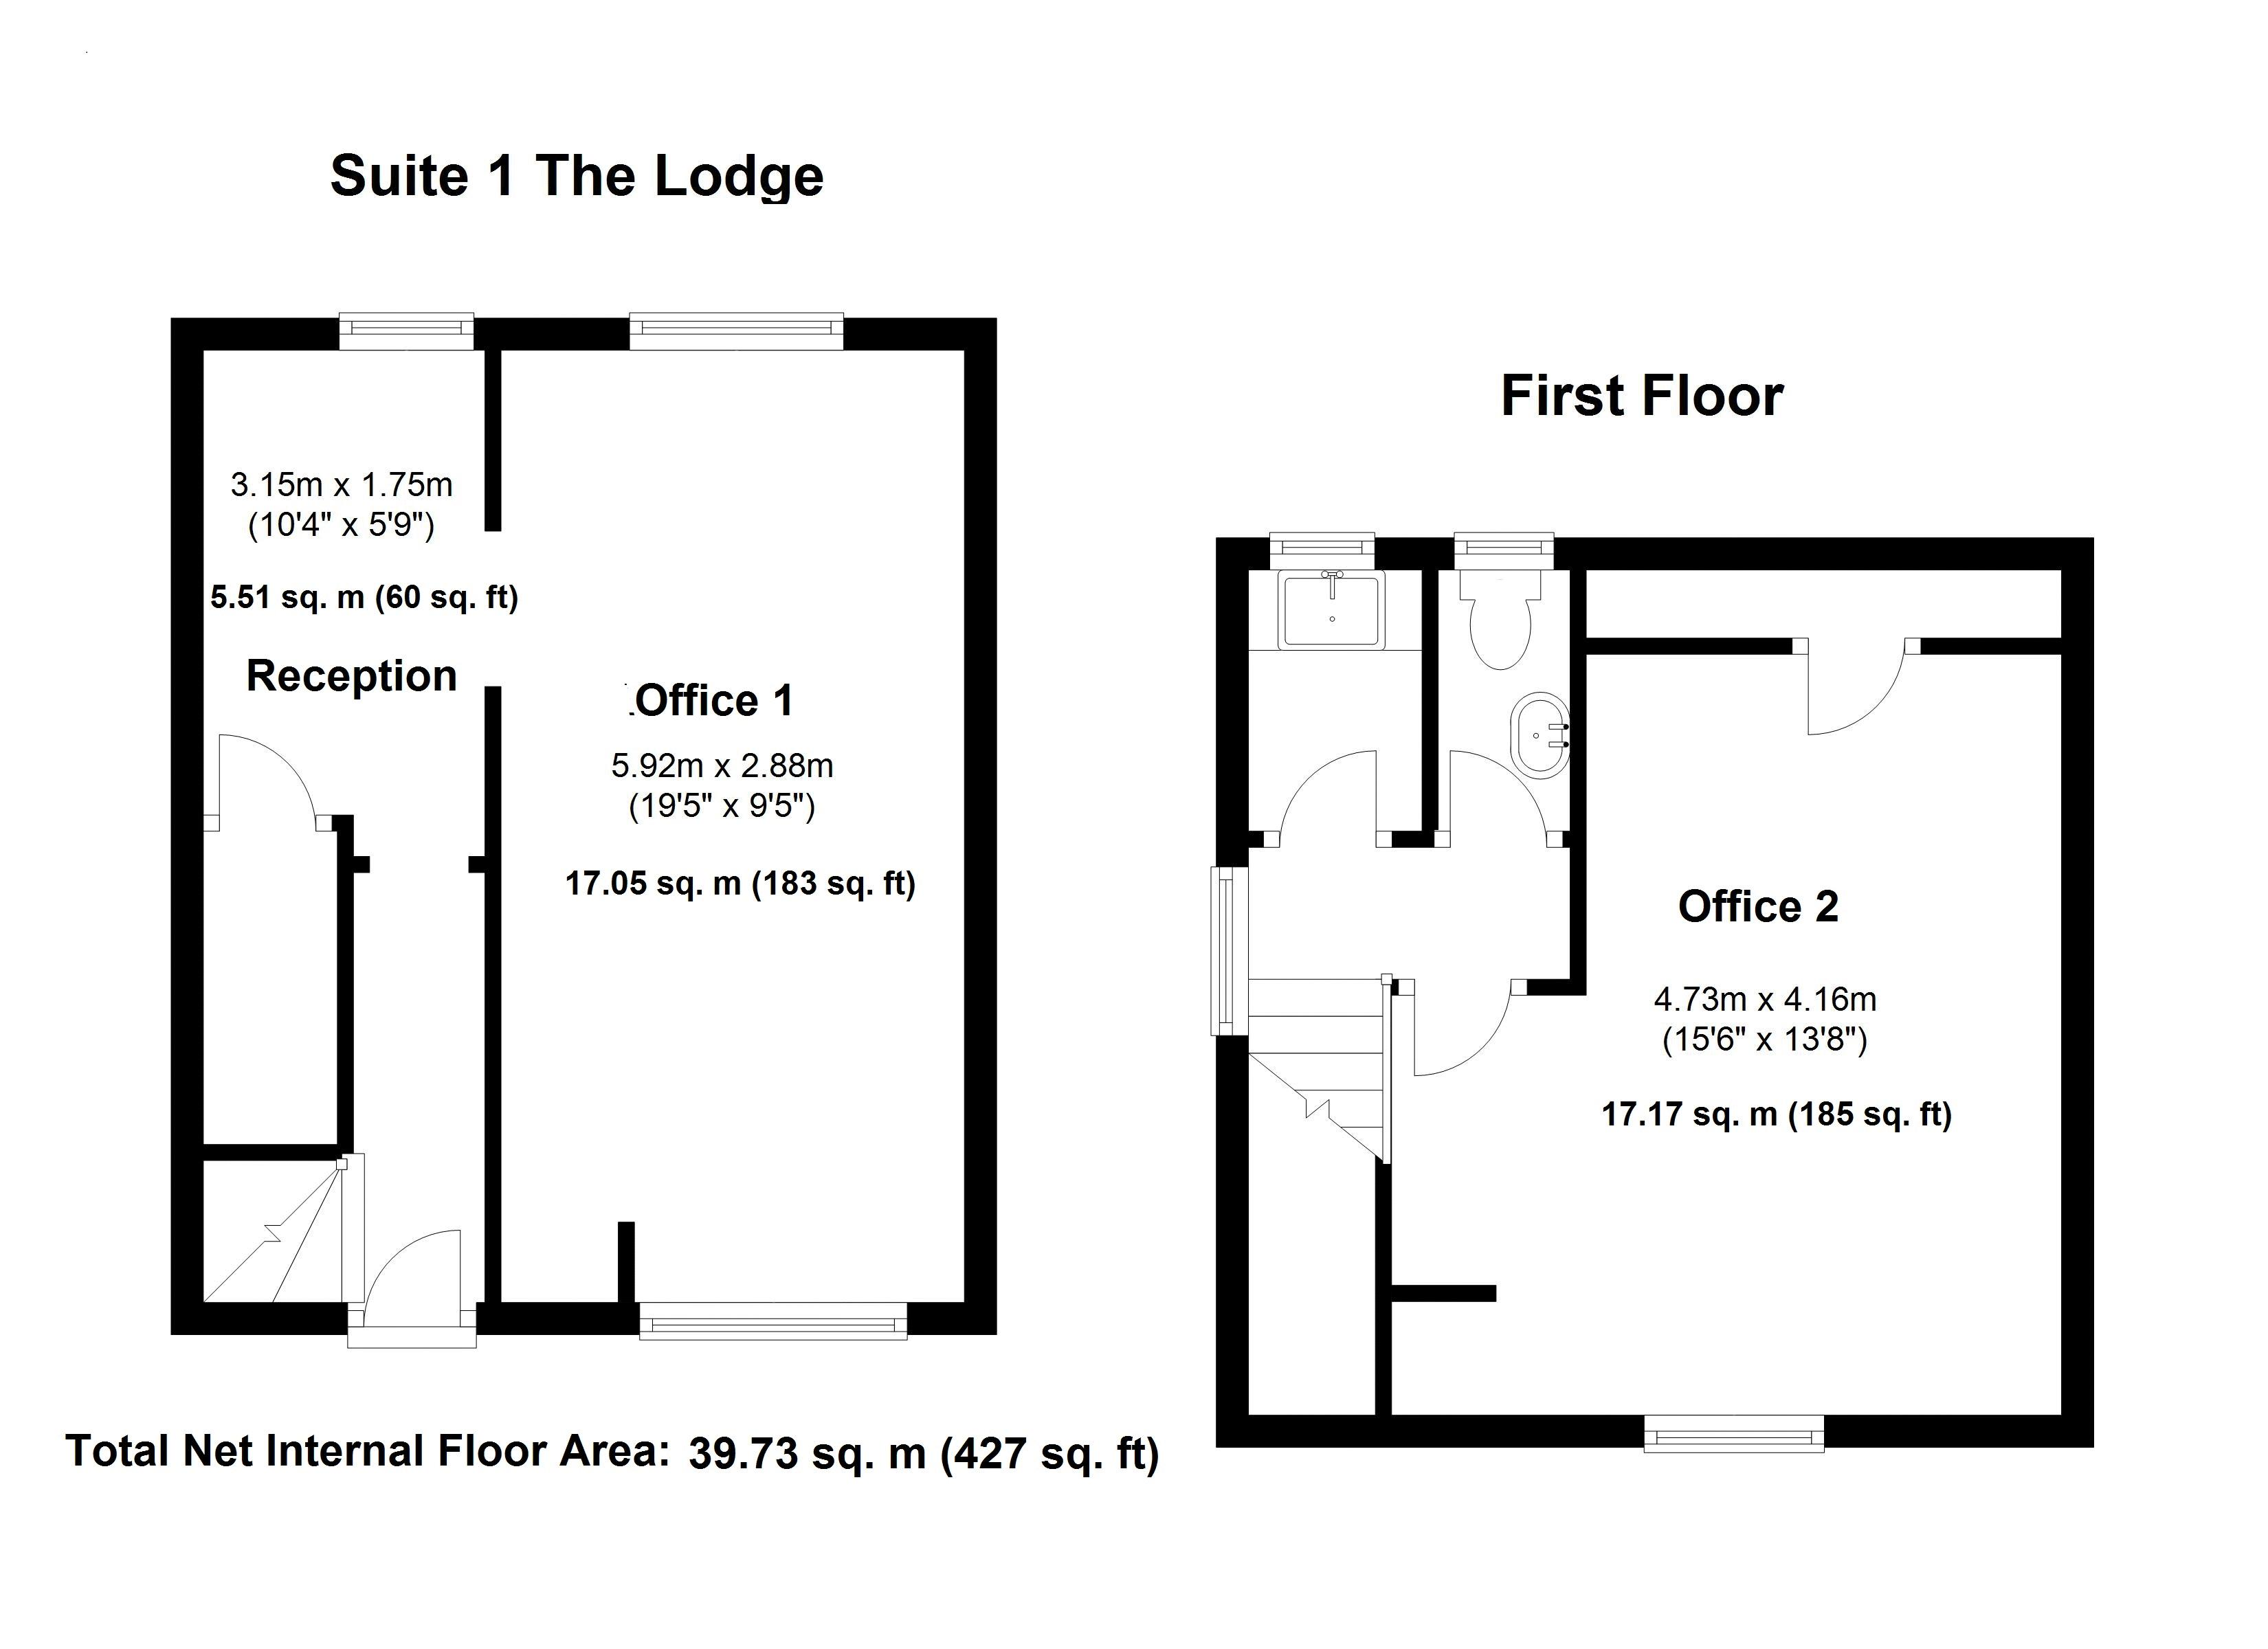 Suite 1 - The Lodge - Floor Plan